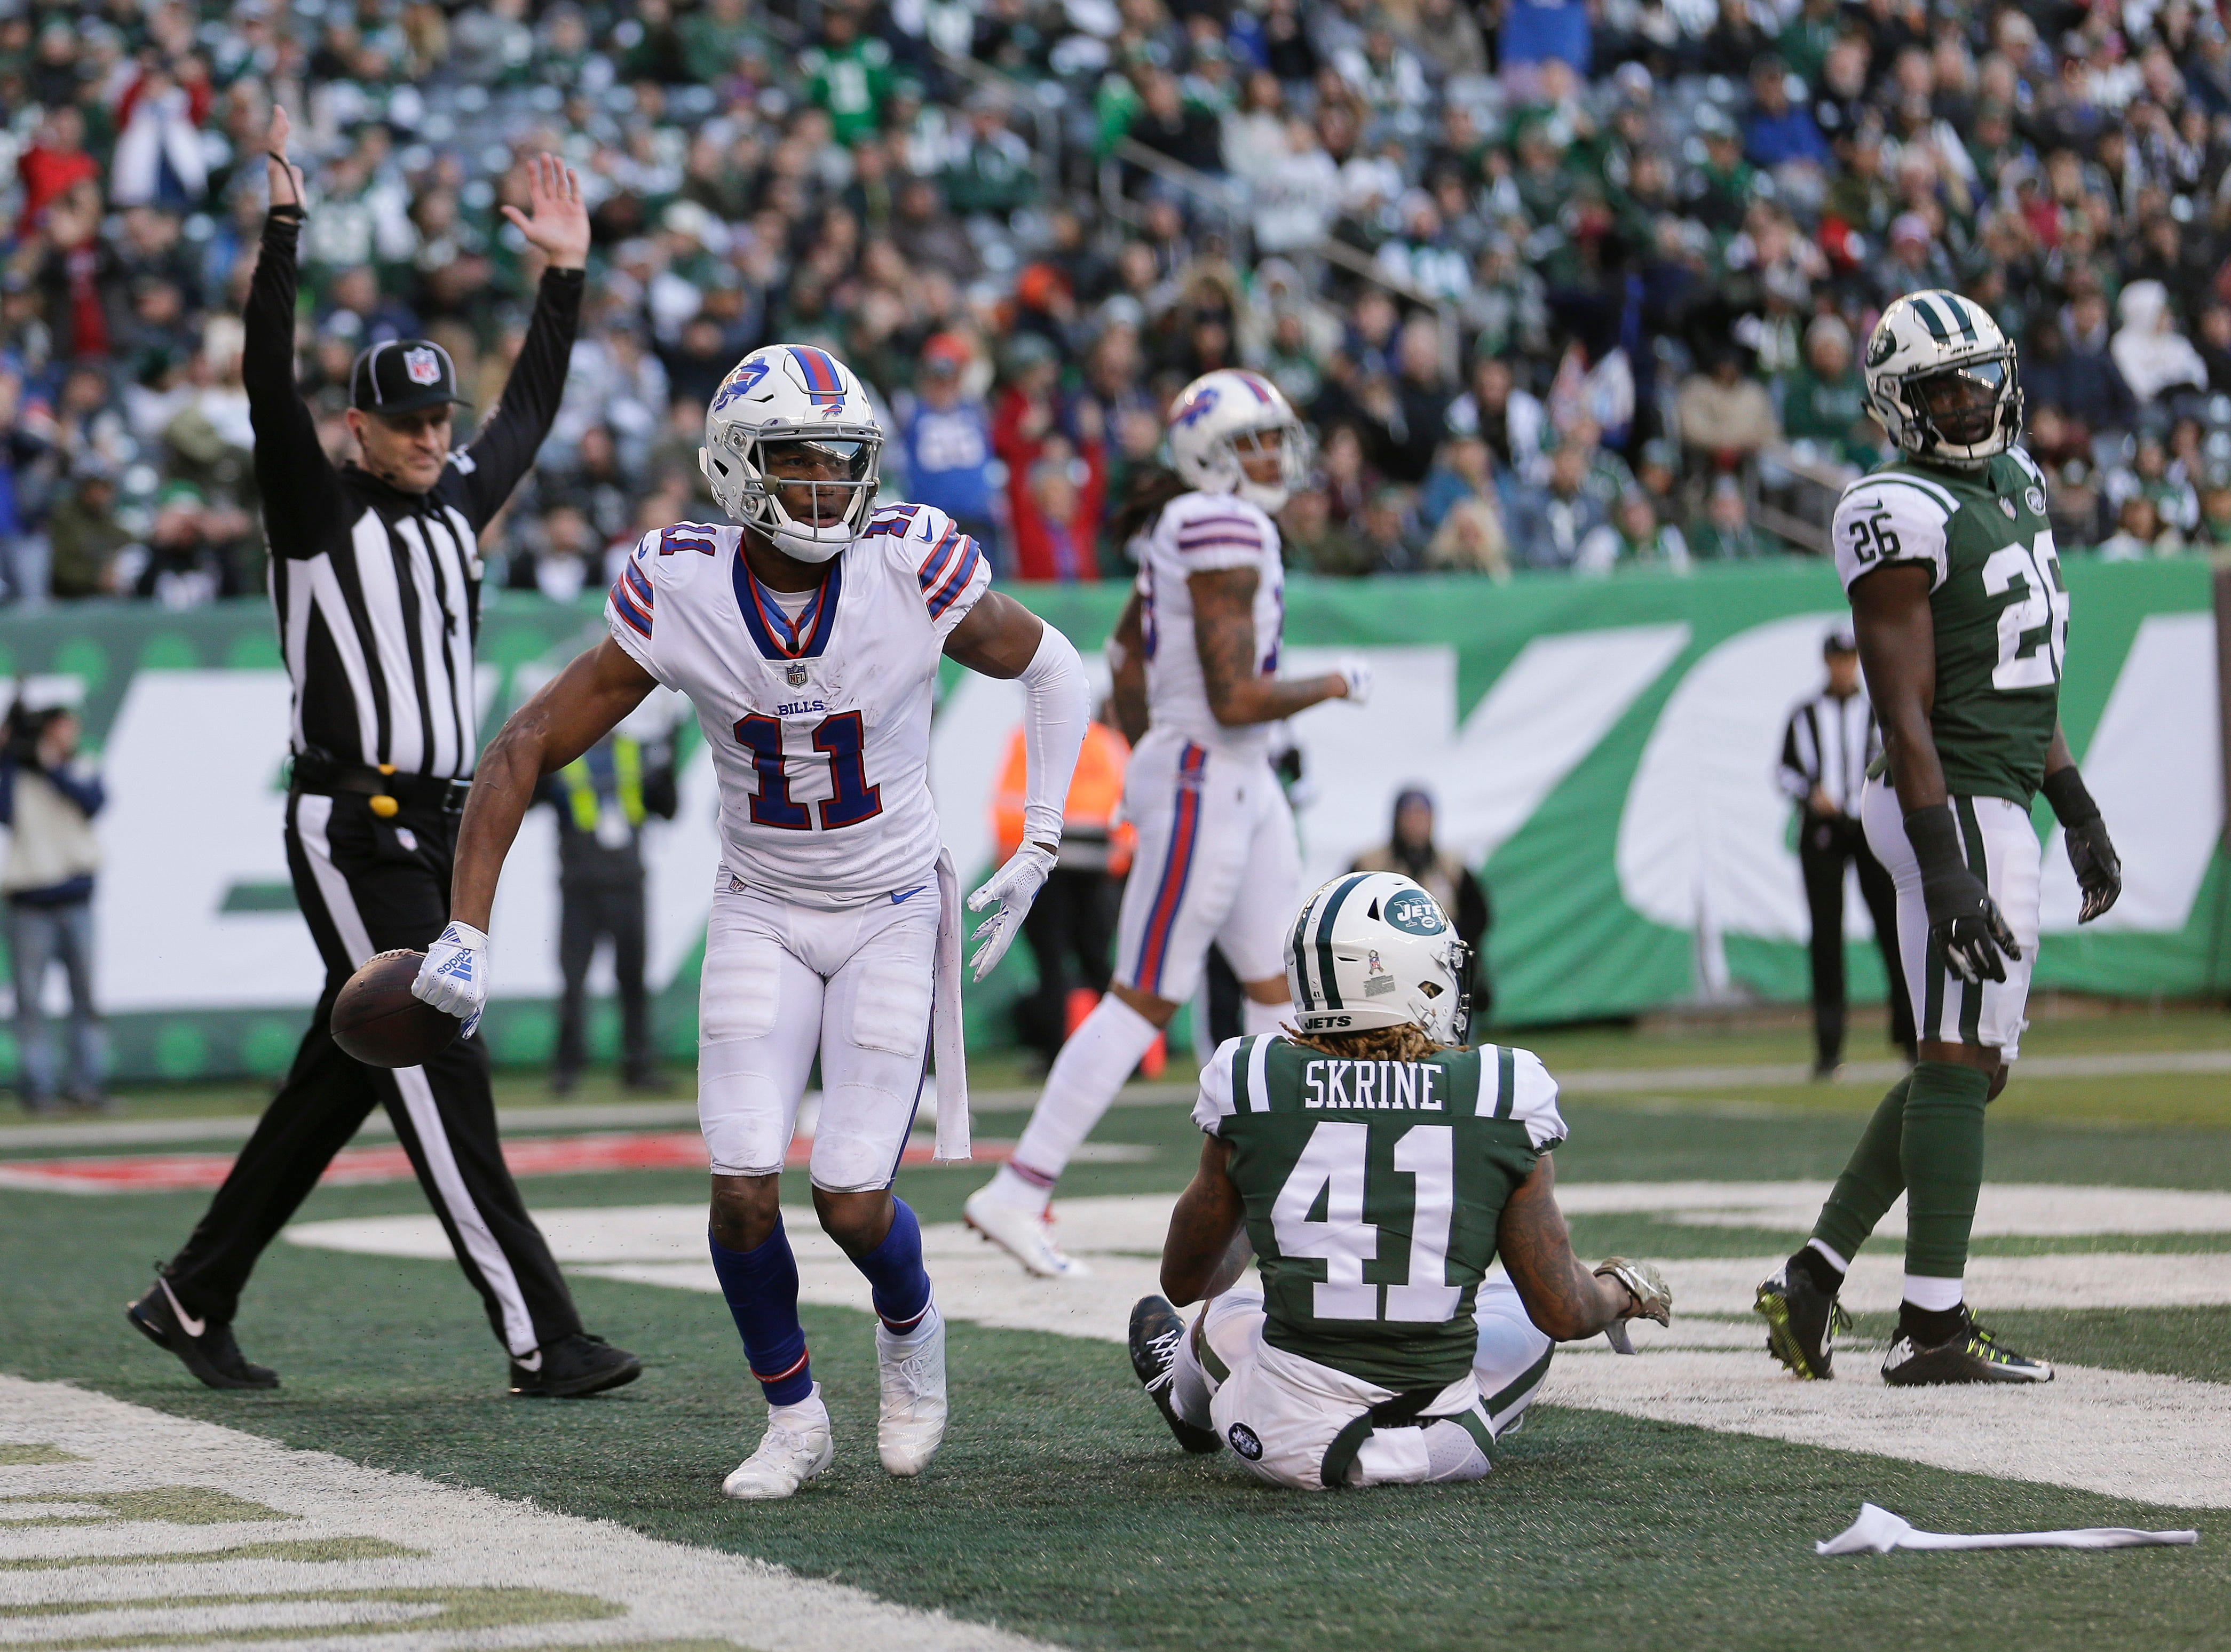 Buffalo Bills wide receiver Zay Jones (11) tosses the ball aside after scoring a touchdown against New York Jets cornerback Buster Skrine (41) during the third quarter of an NFL football game, Sunday, Nov. 11, 2018, in East Rutherford, N.J. (AP Photo/Seth Wenig)